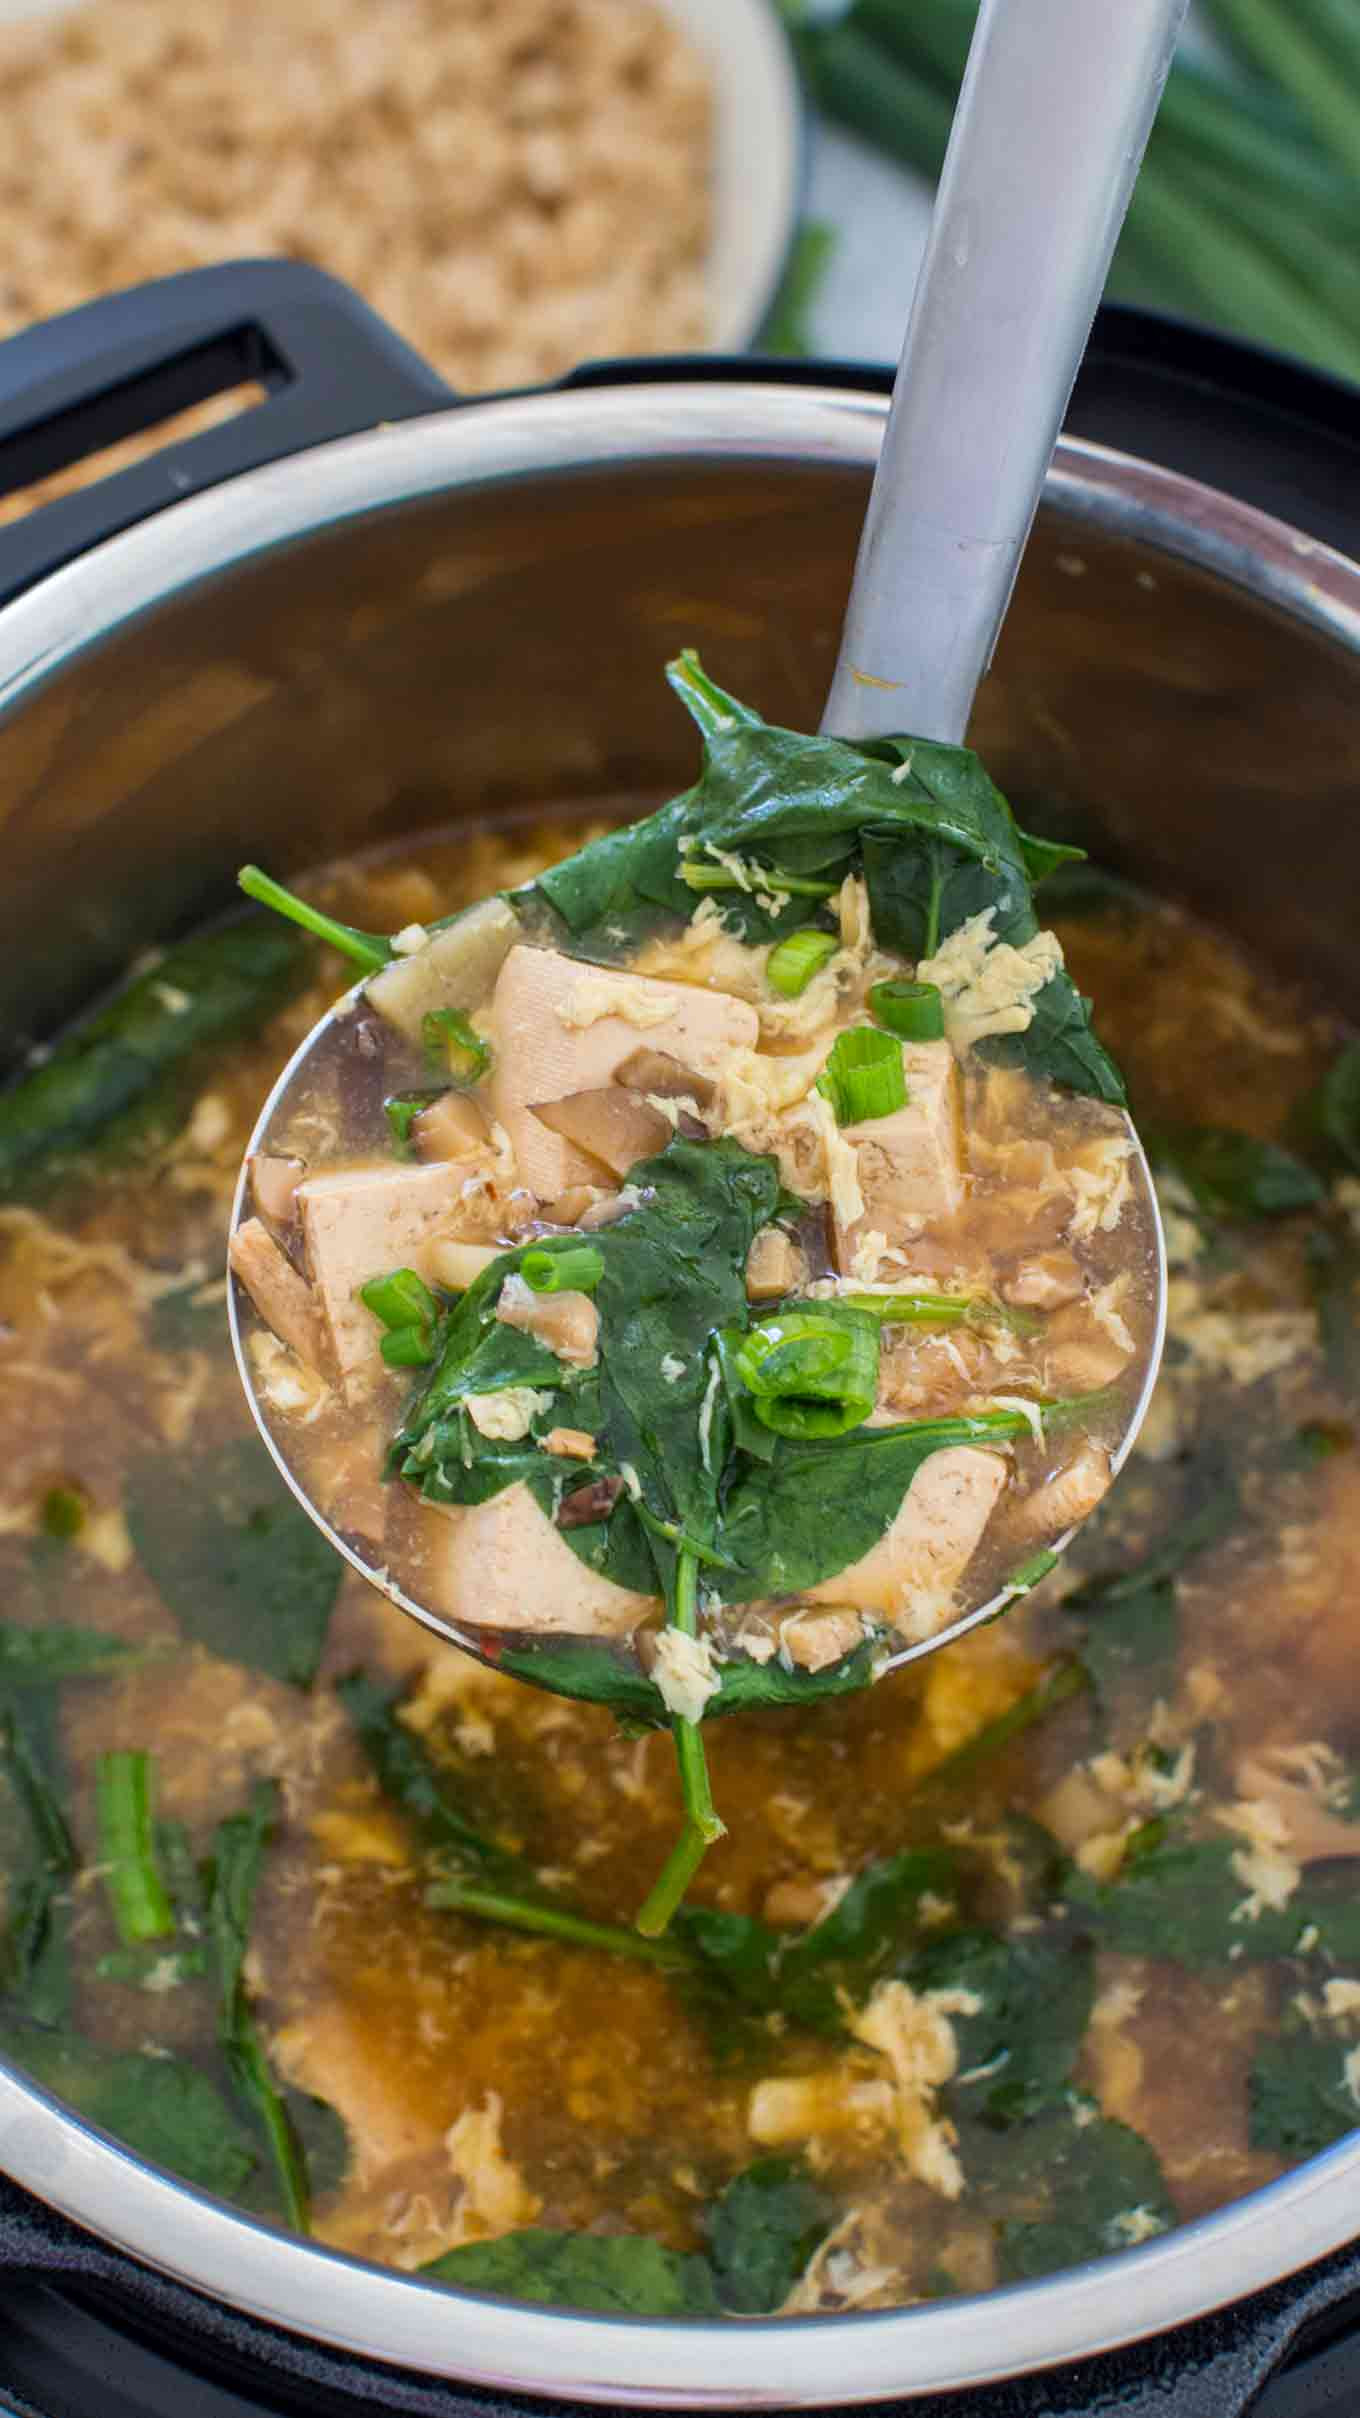 Healthy Instant Pot Soup Recipes  Instant Pot Hot and Sour Soup VIDEO Sweet and Savory Meals